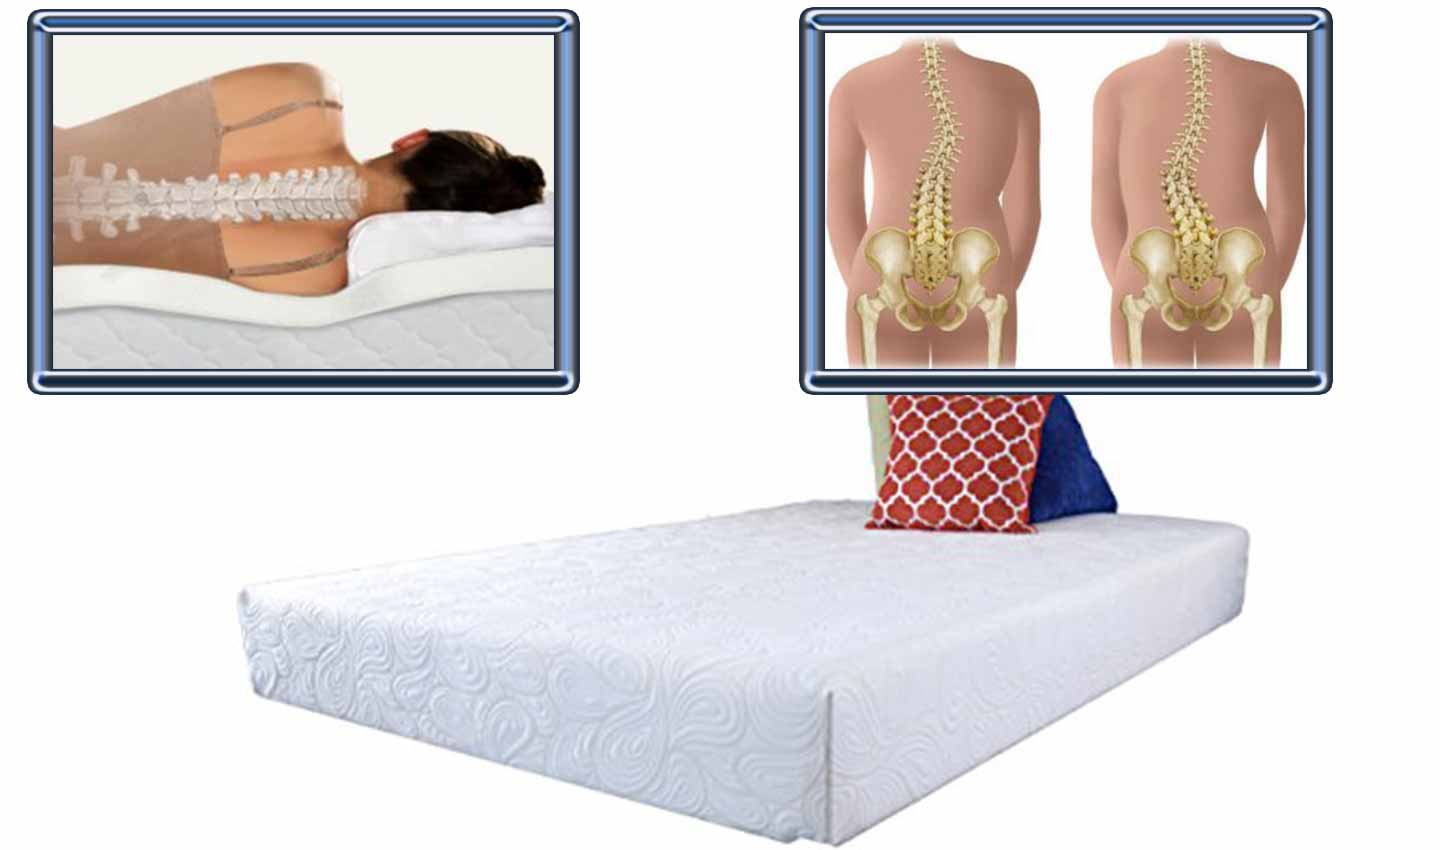 Best Traditional Mattress The 2 Best Mattresses For Scoliosis To Buy In 2019